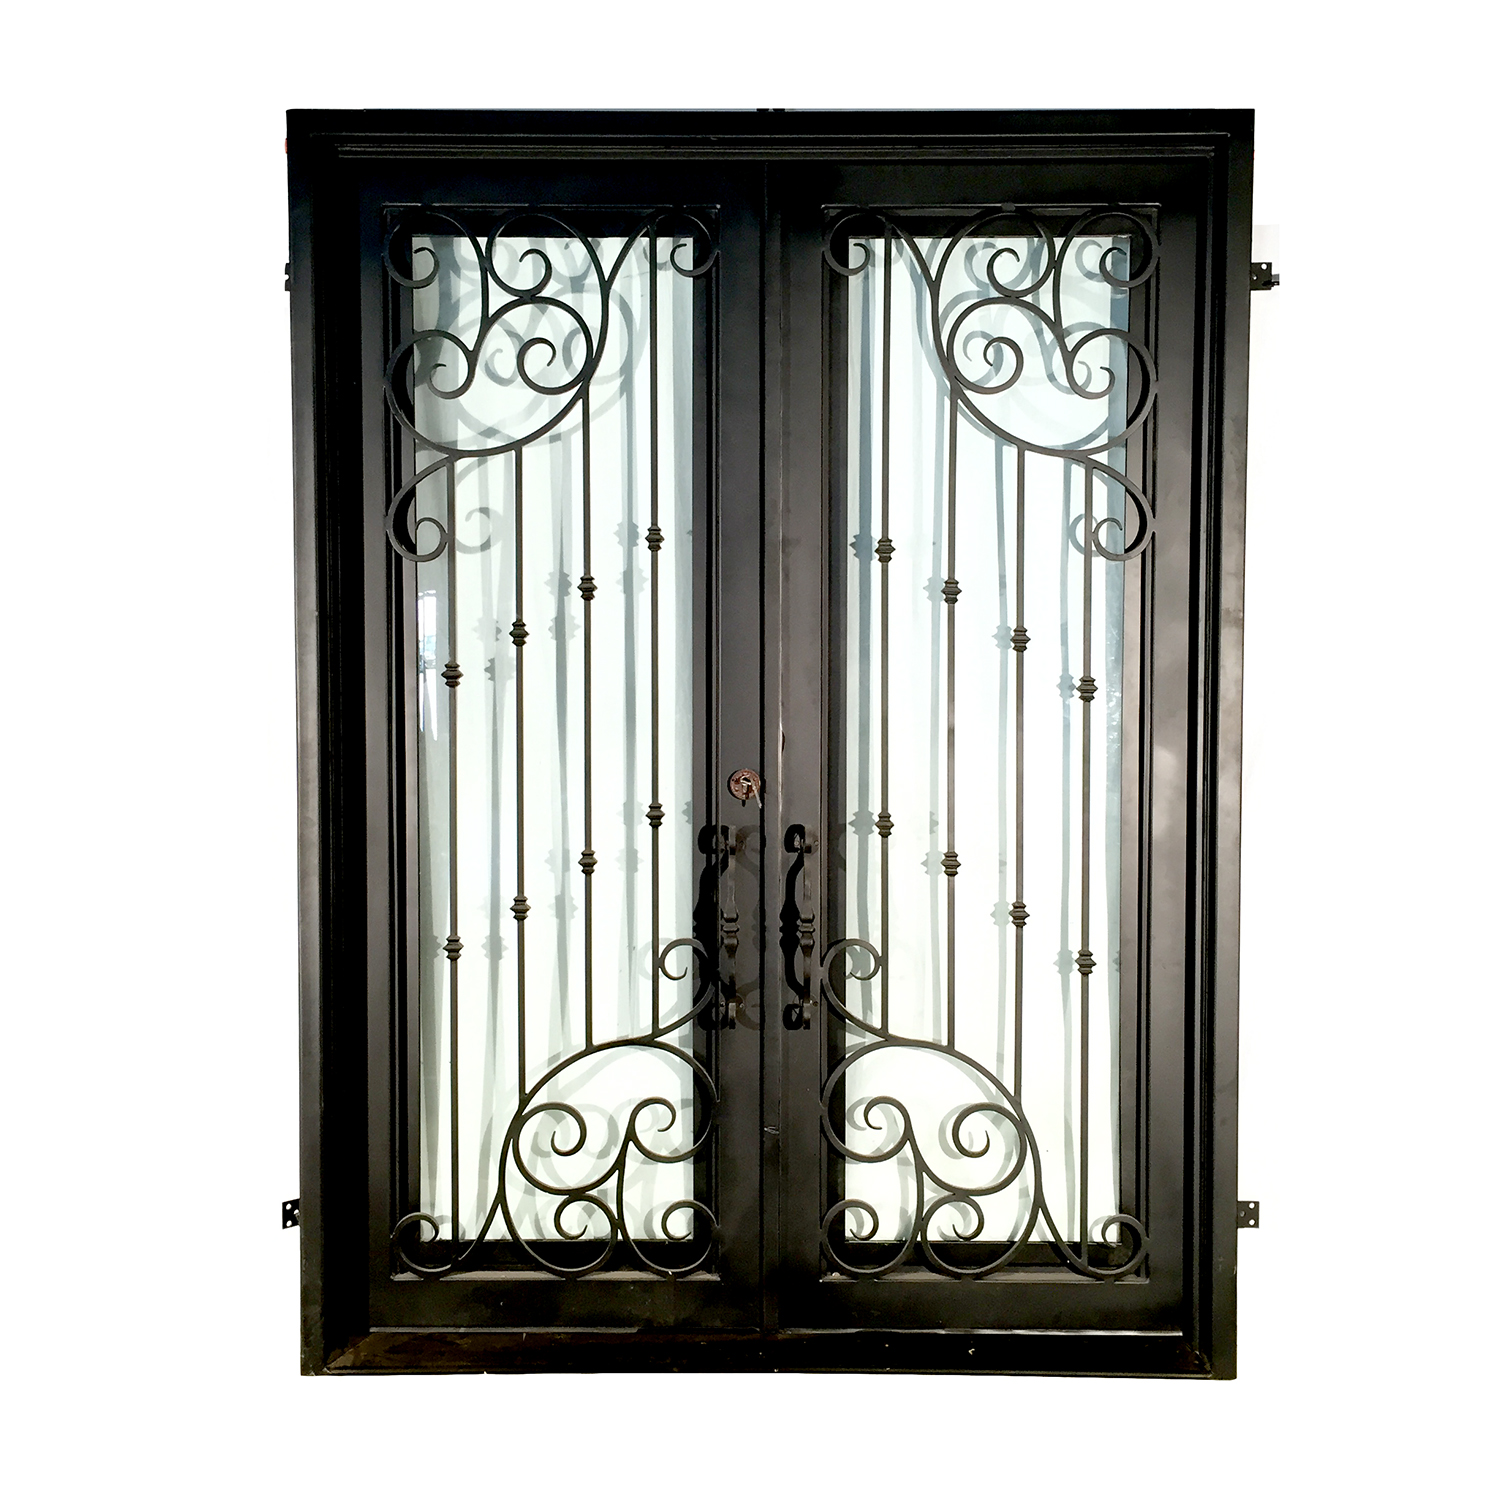 Iron Double Door With Ornate Design Metropolitan